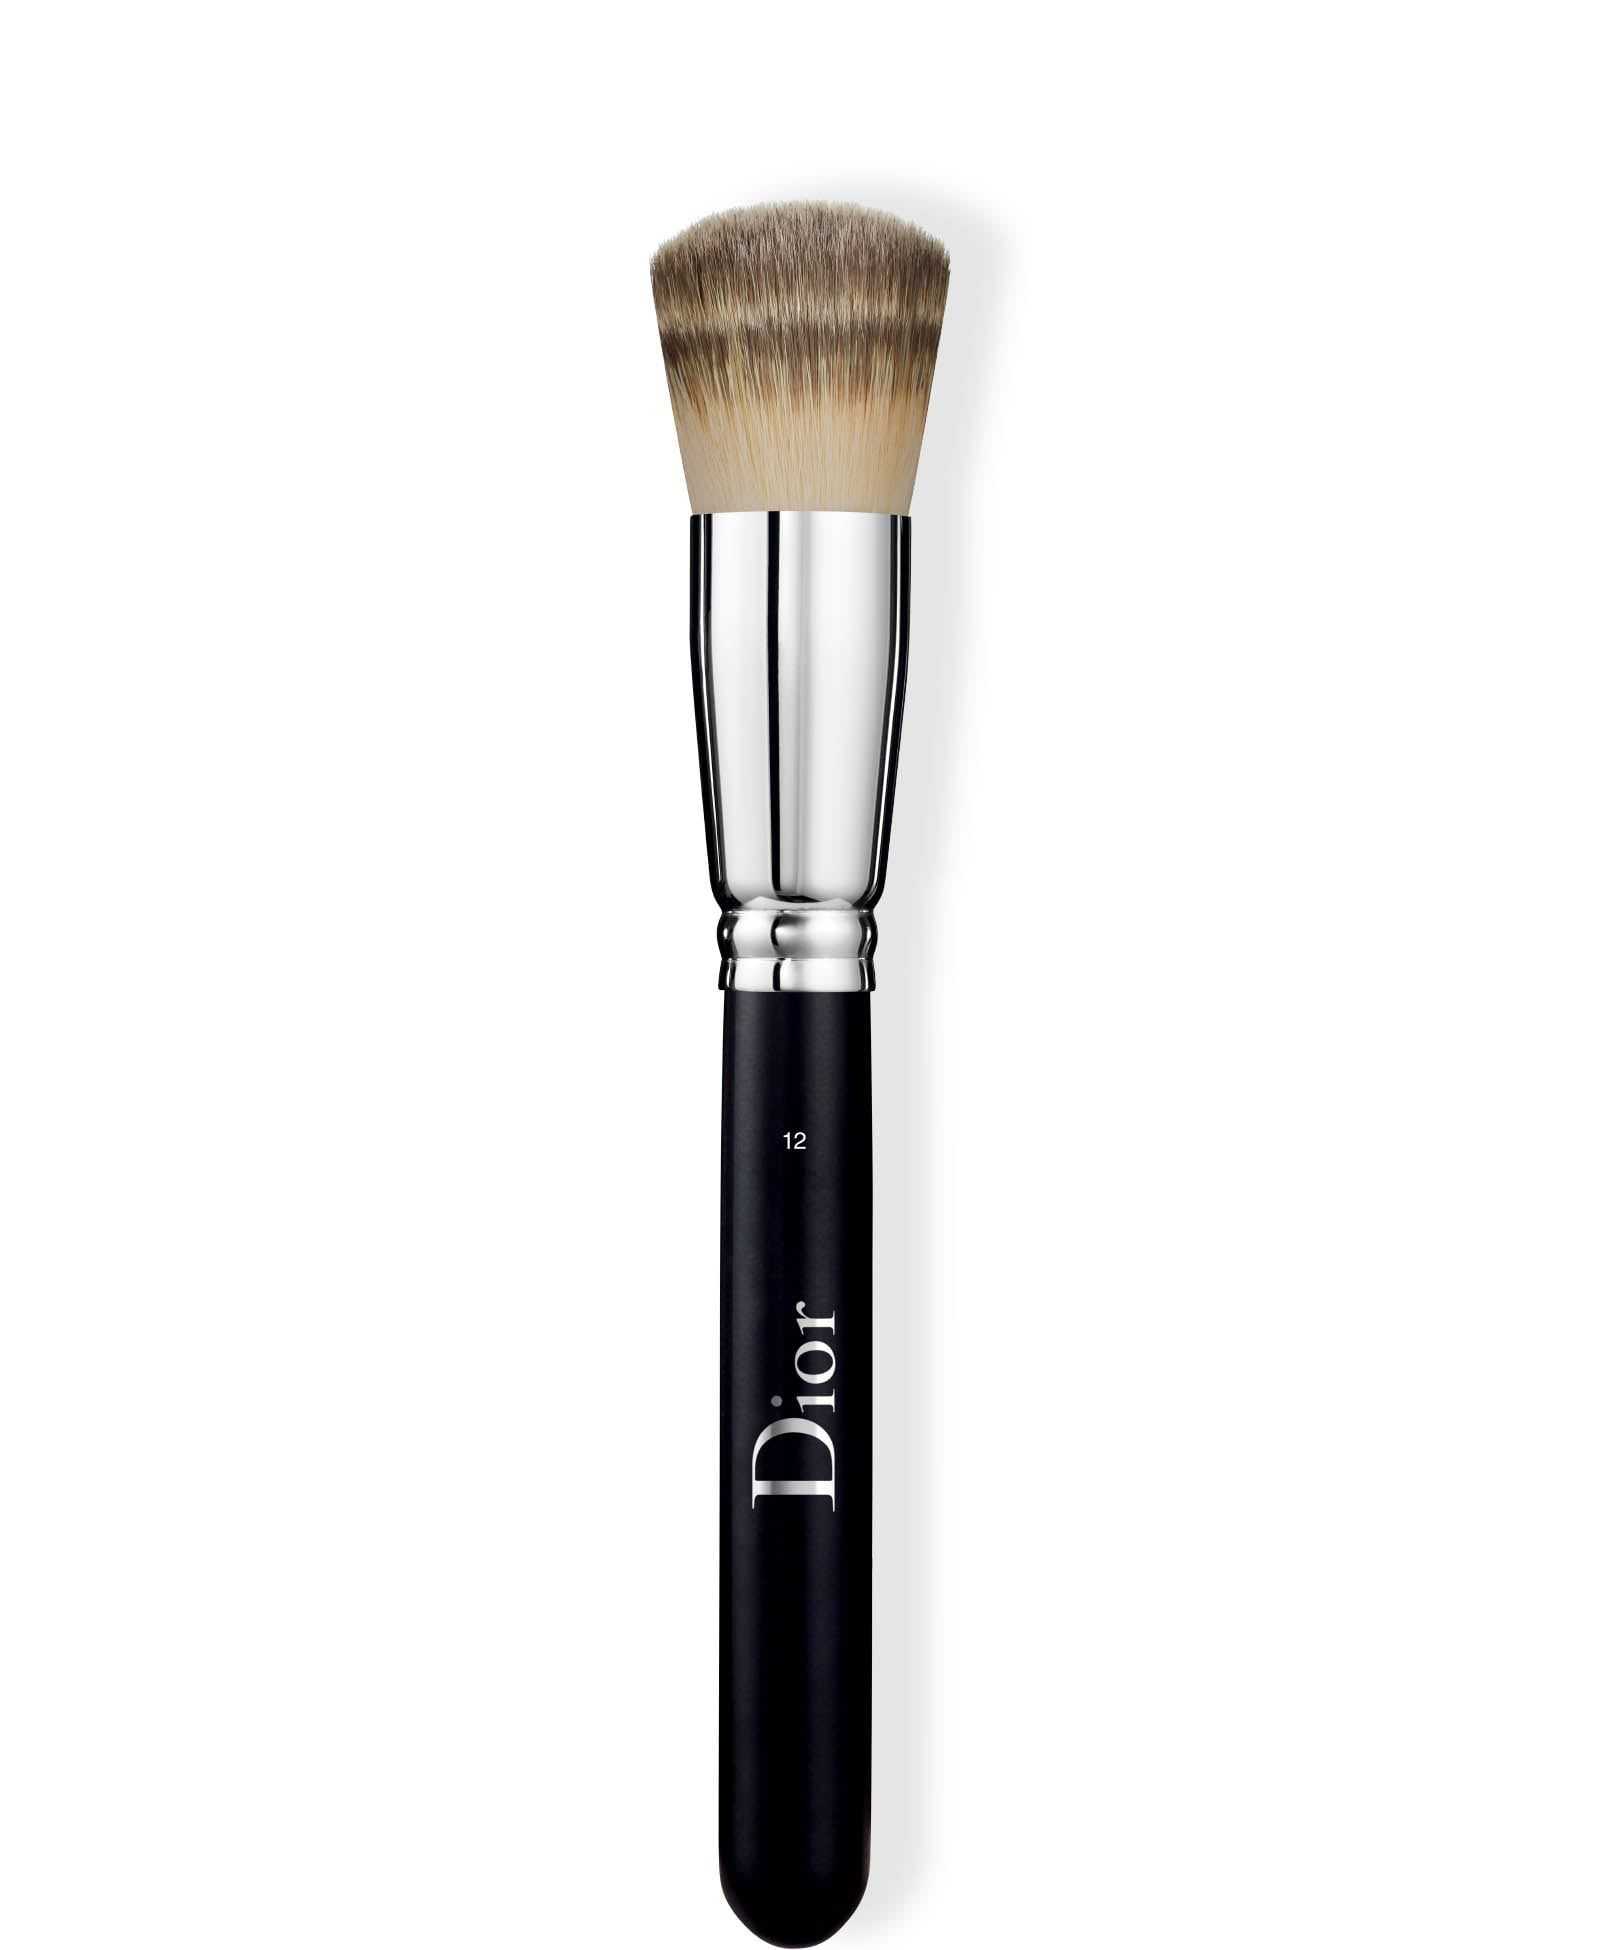 Full Coverage Fluid Foundation brush 12